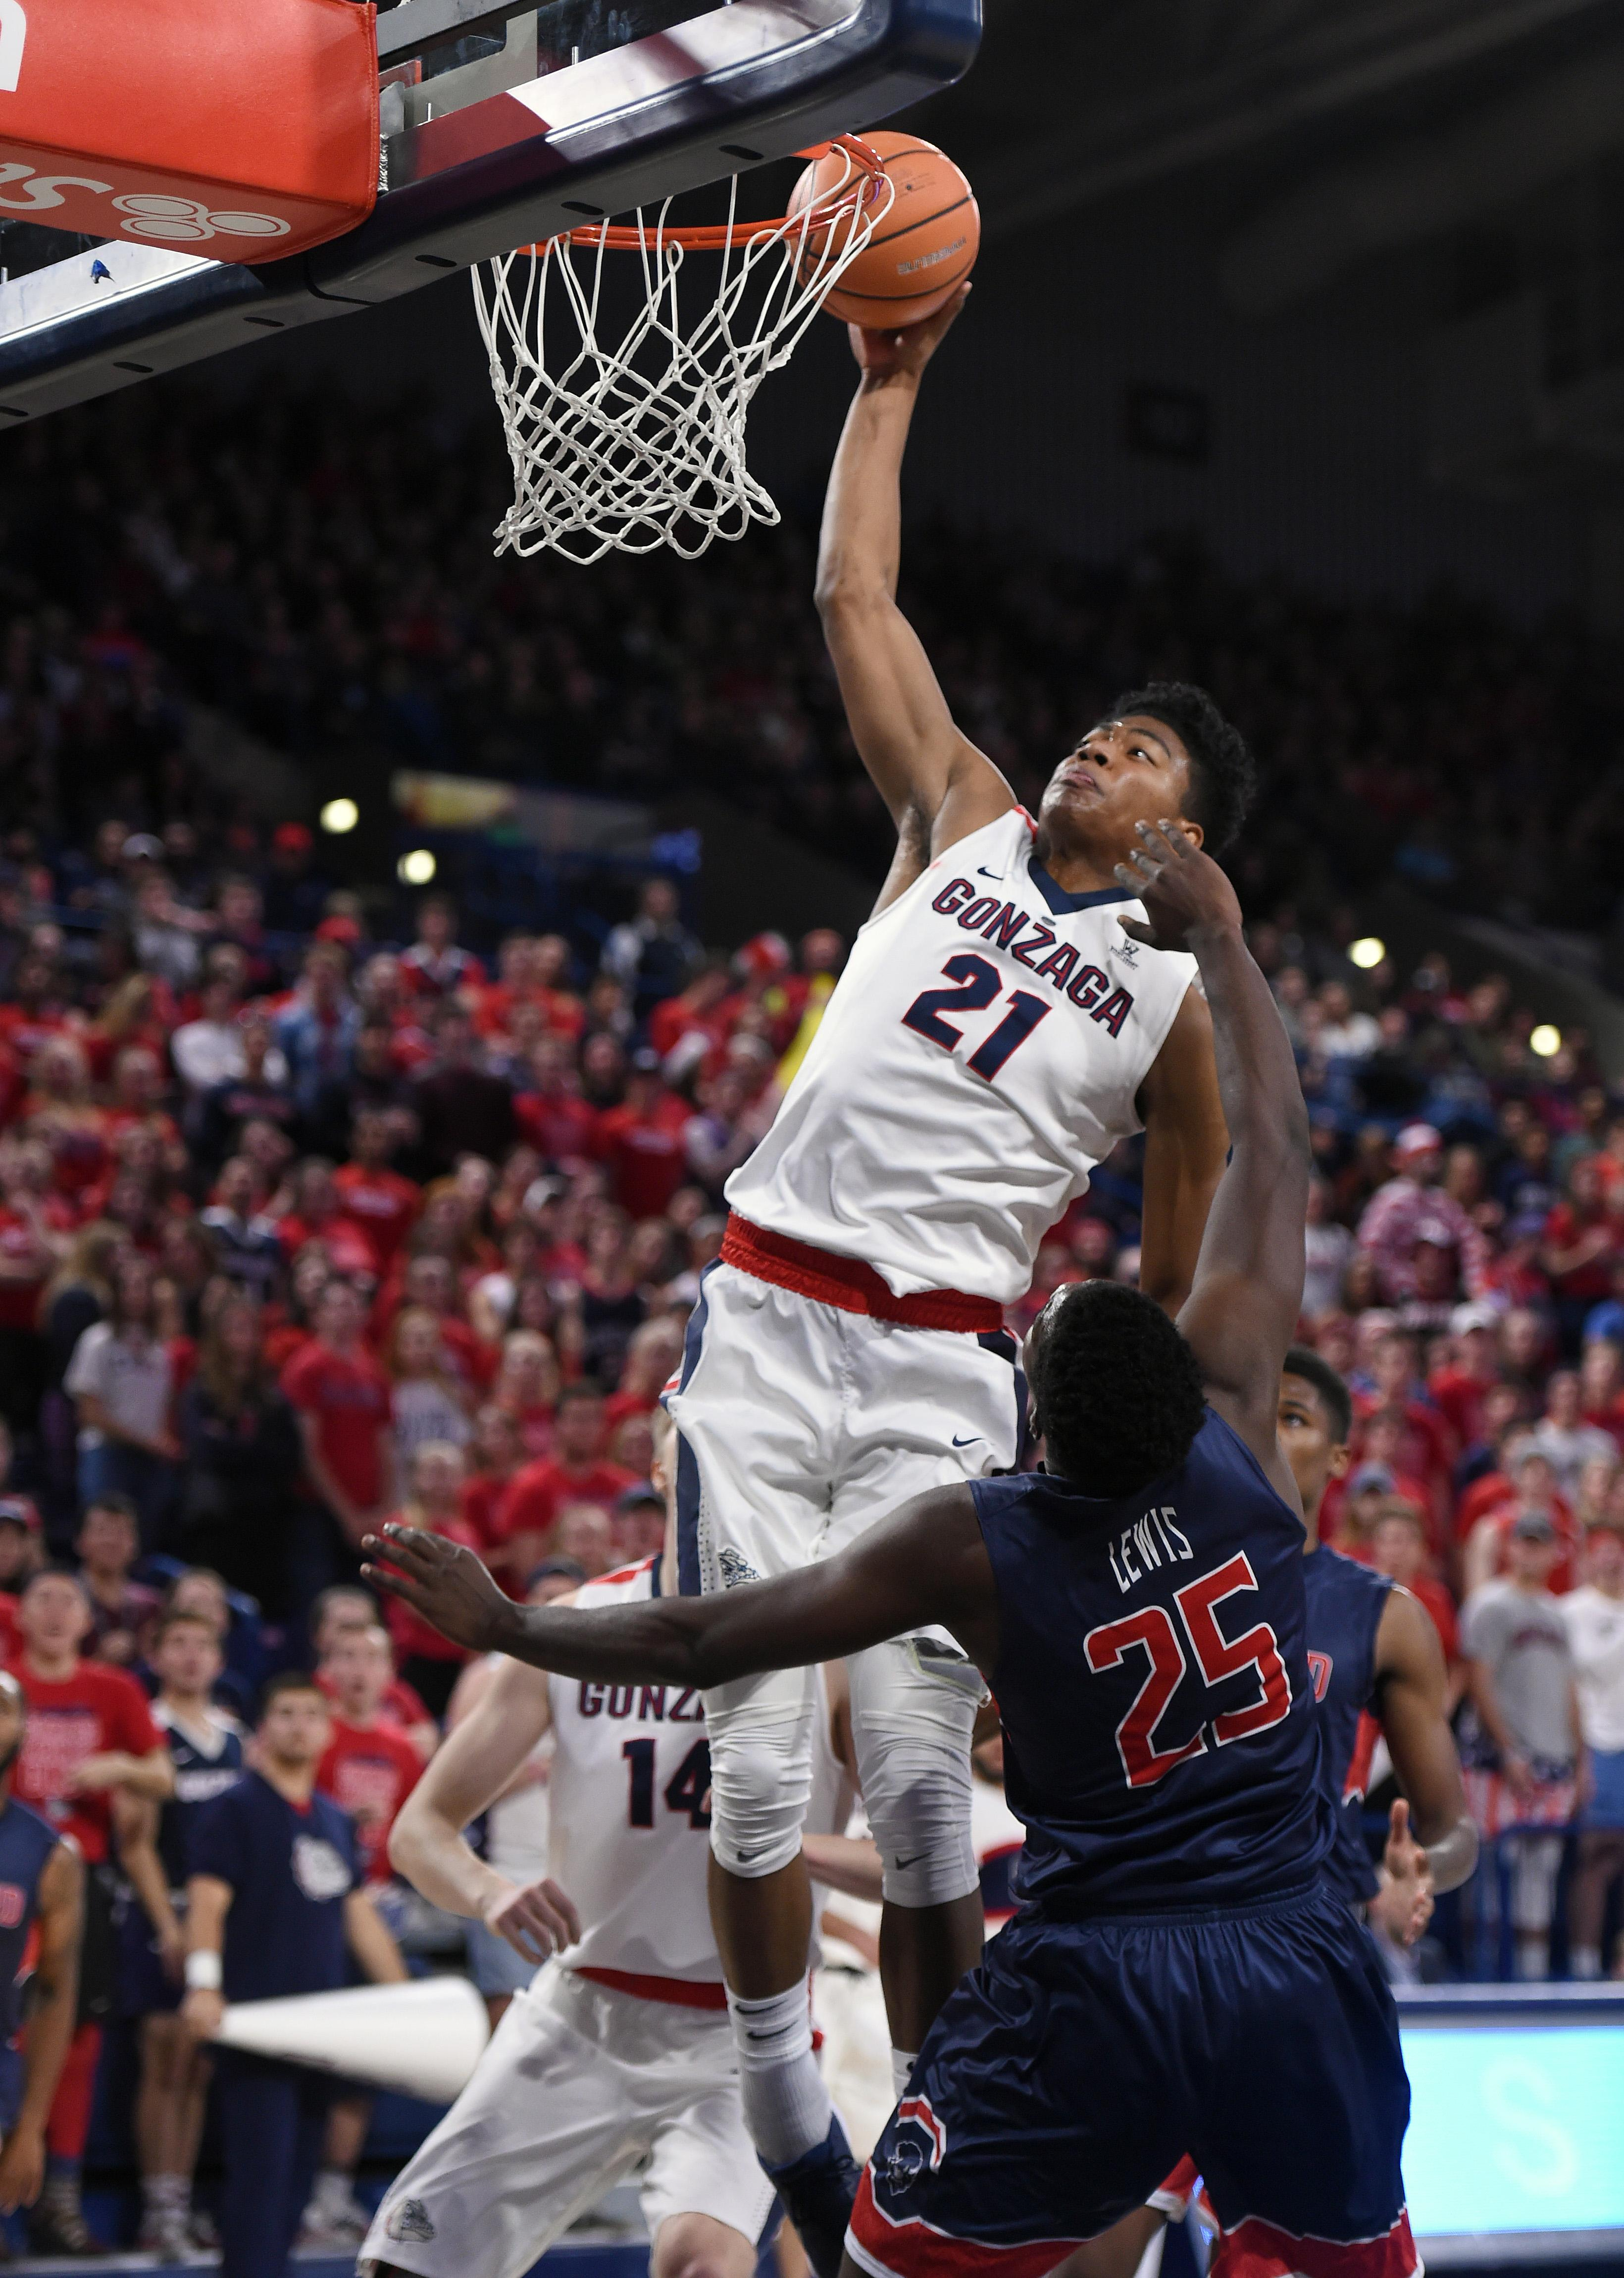 Gonzaga puts charge into crowd with five first-half dunks | The Spokesman-Review